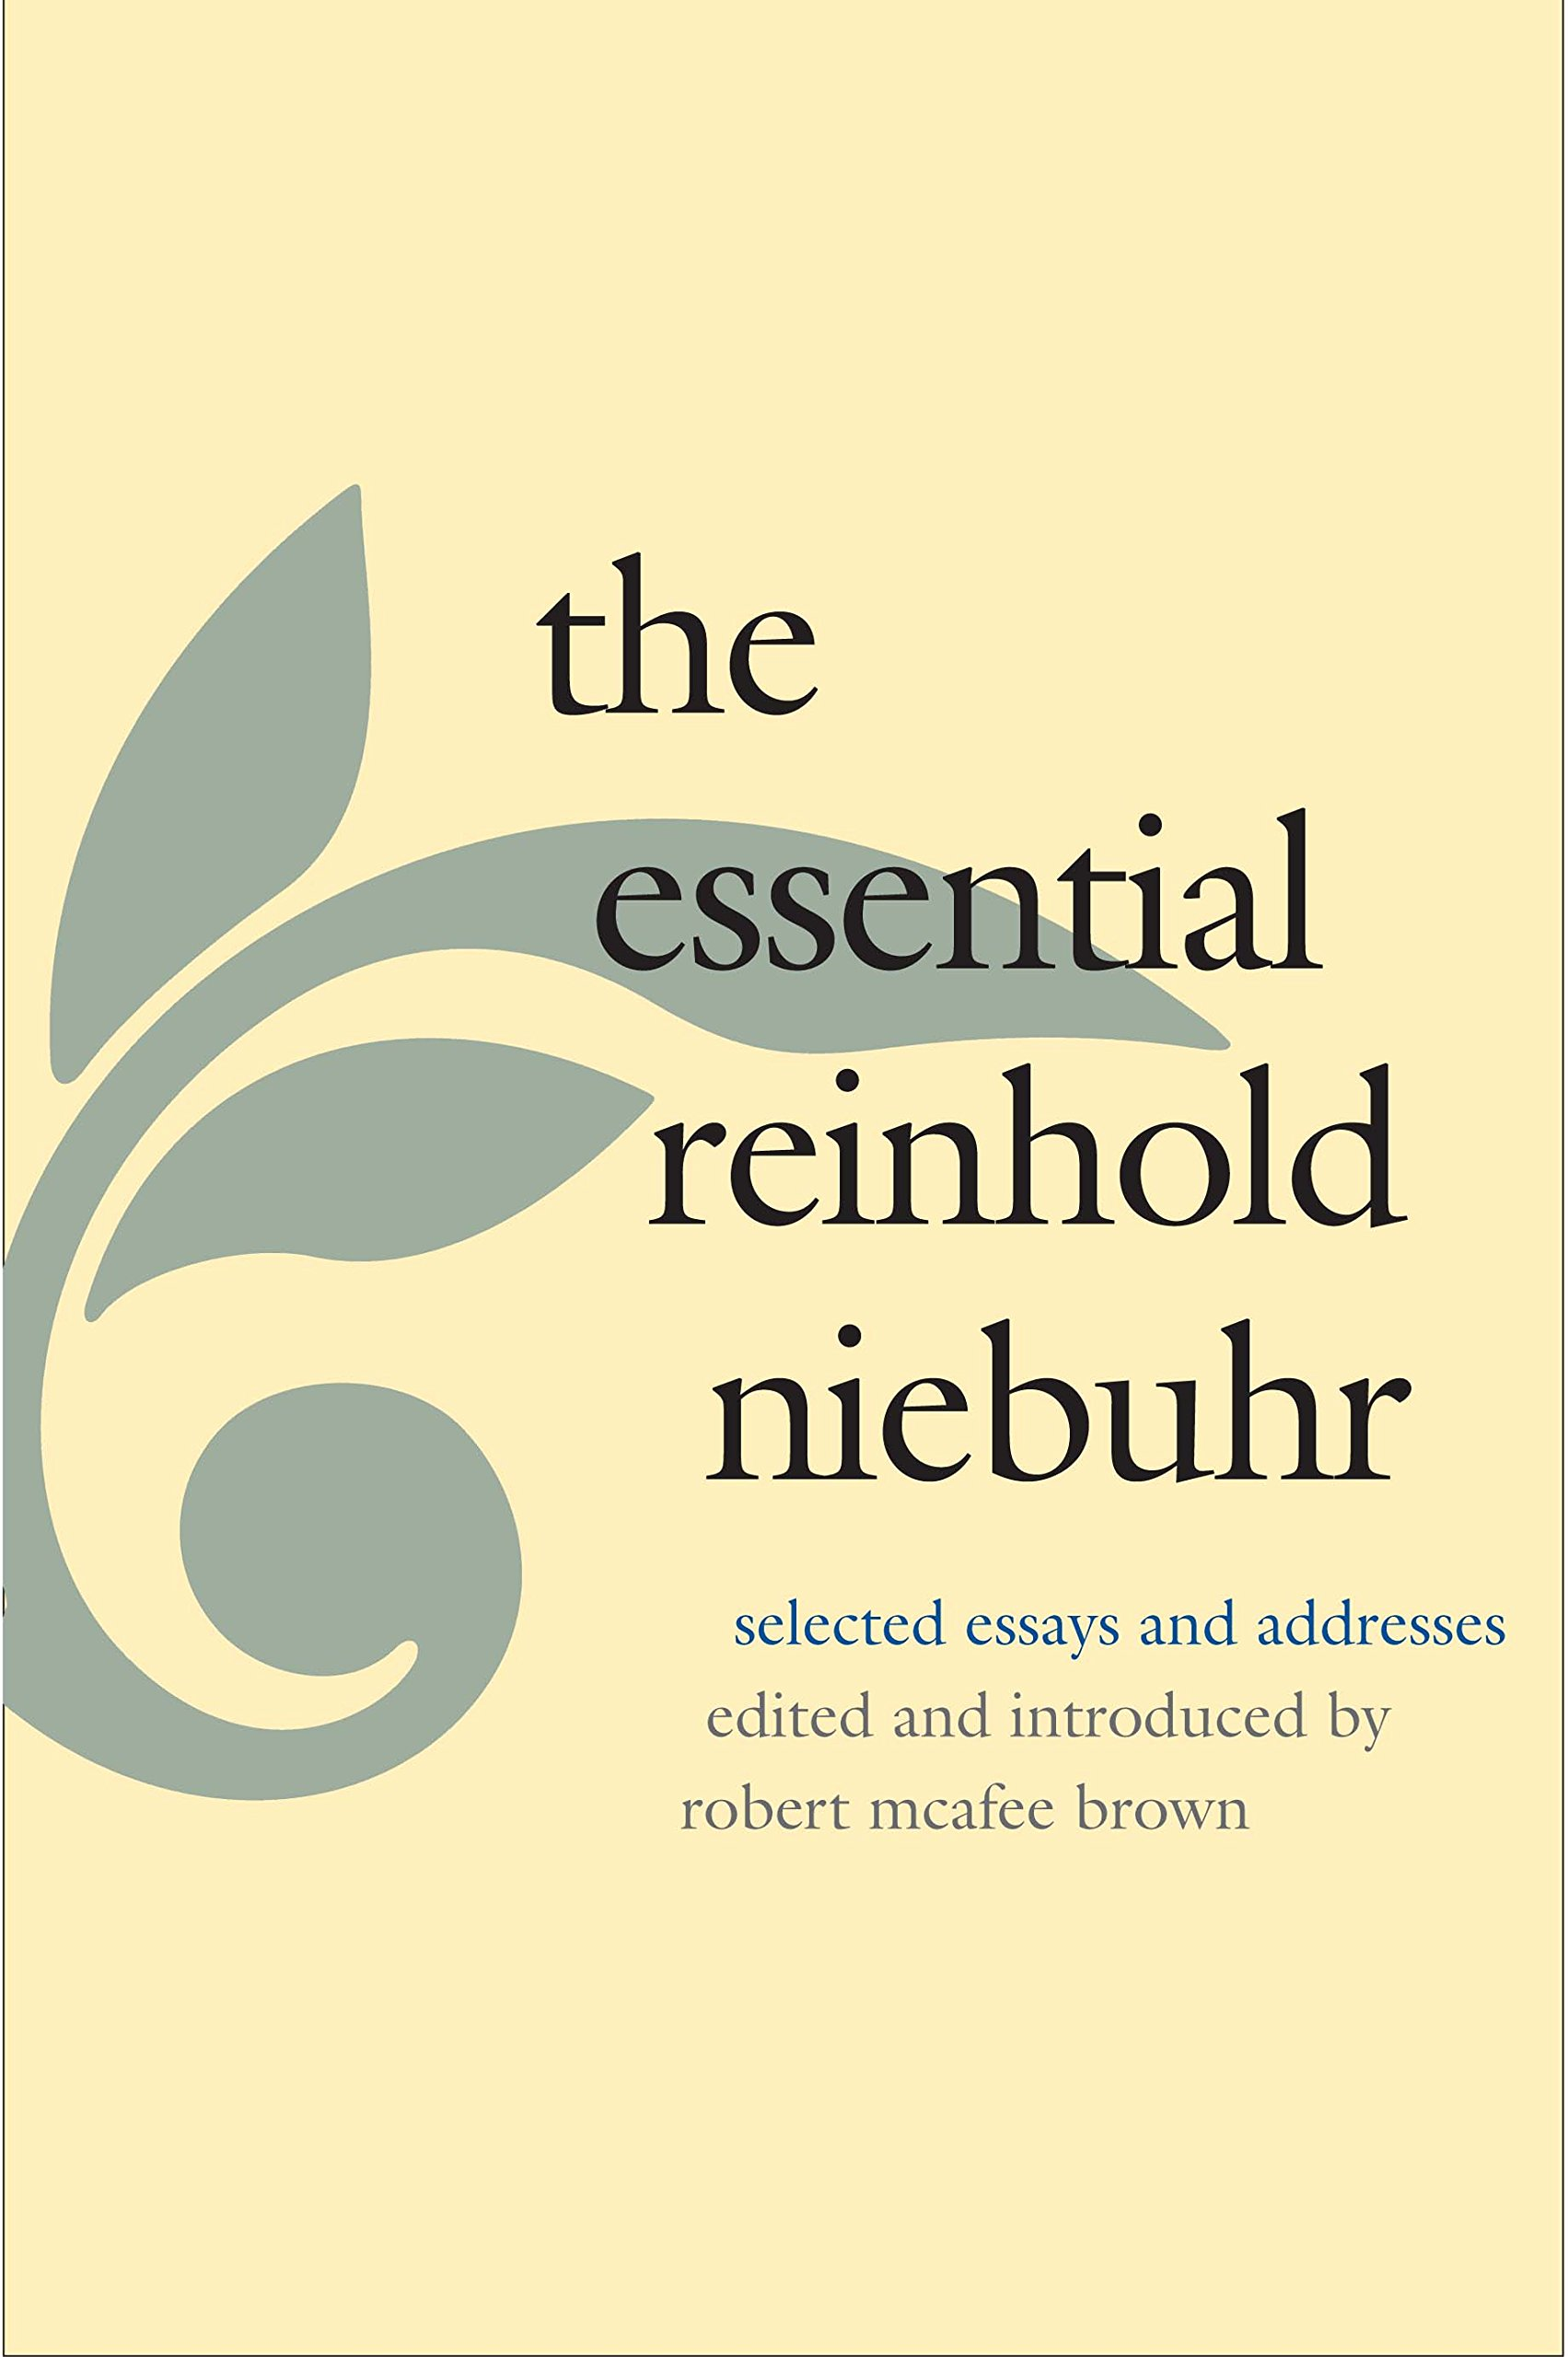 the essential reinhold niebuhr selected essays and addresses the essential reinhold niebuhr selected essays and addresses reinhold niebuhr robert mcafee brown 9780300040012 com books